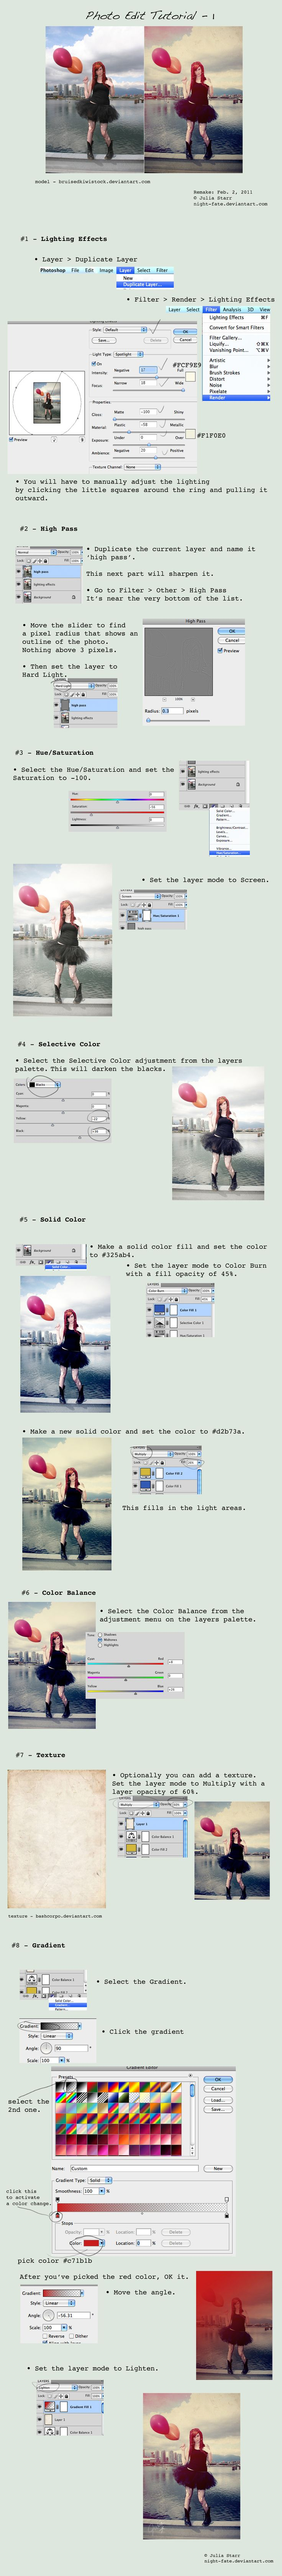 photo edit tutorial - 1 by night-fate.deviantart.com on @deviantART